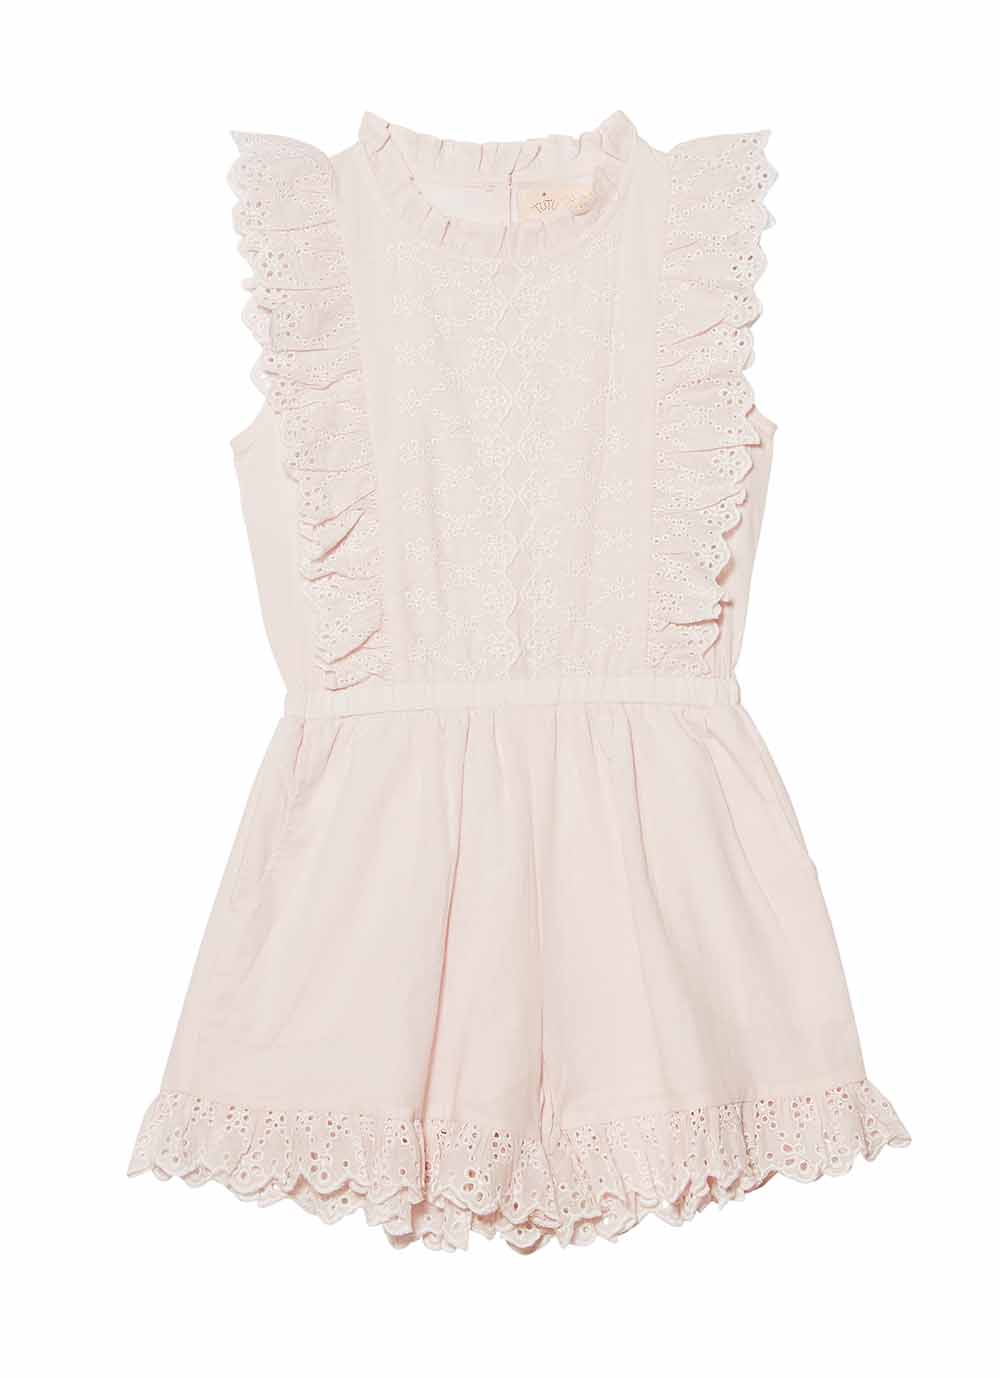 6f2f2bd0f12 SWEET NETTLE PLAYSUIT - TEA ROSE - Welcome to the World of Tutudumonde